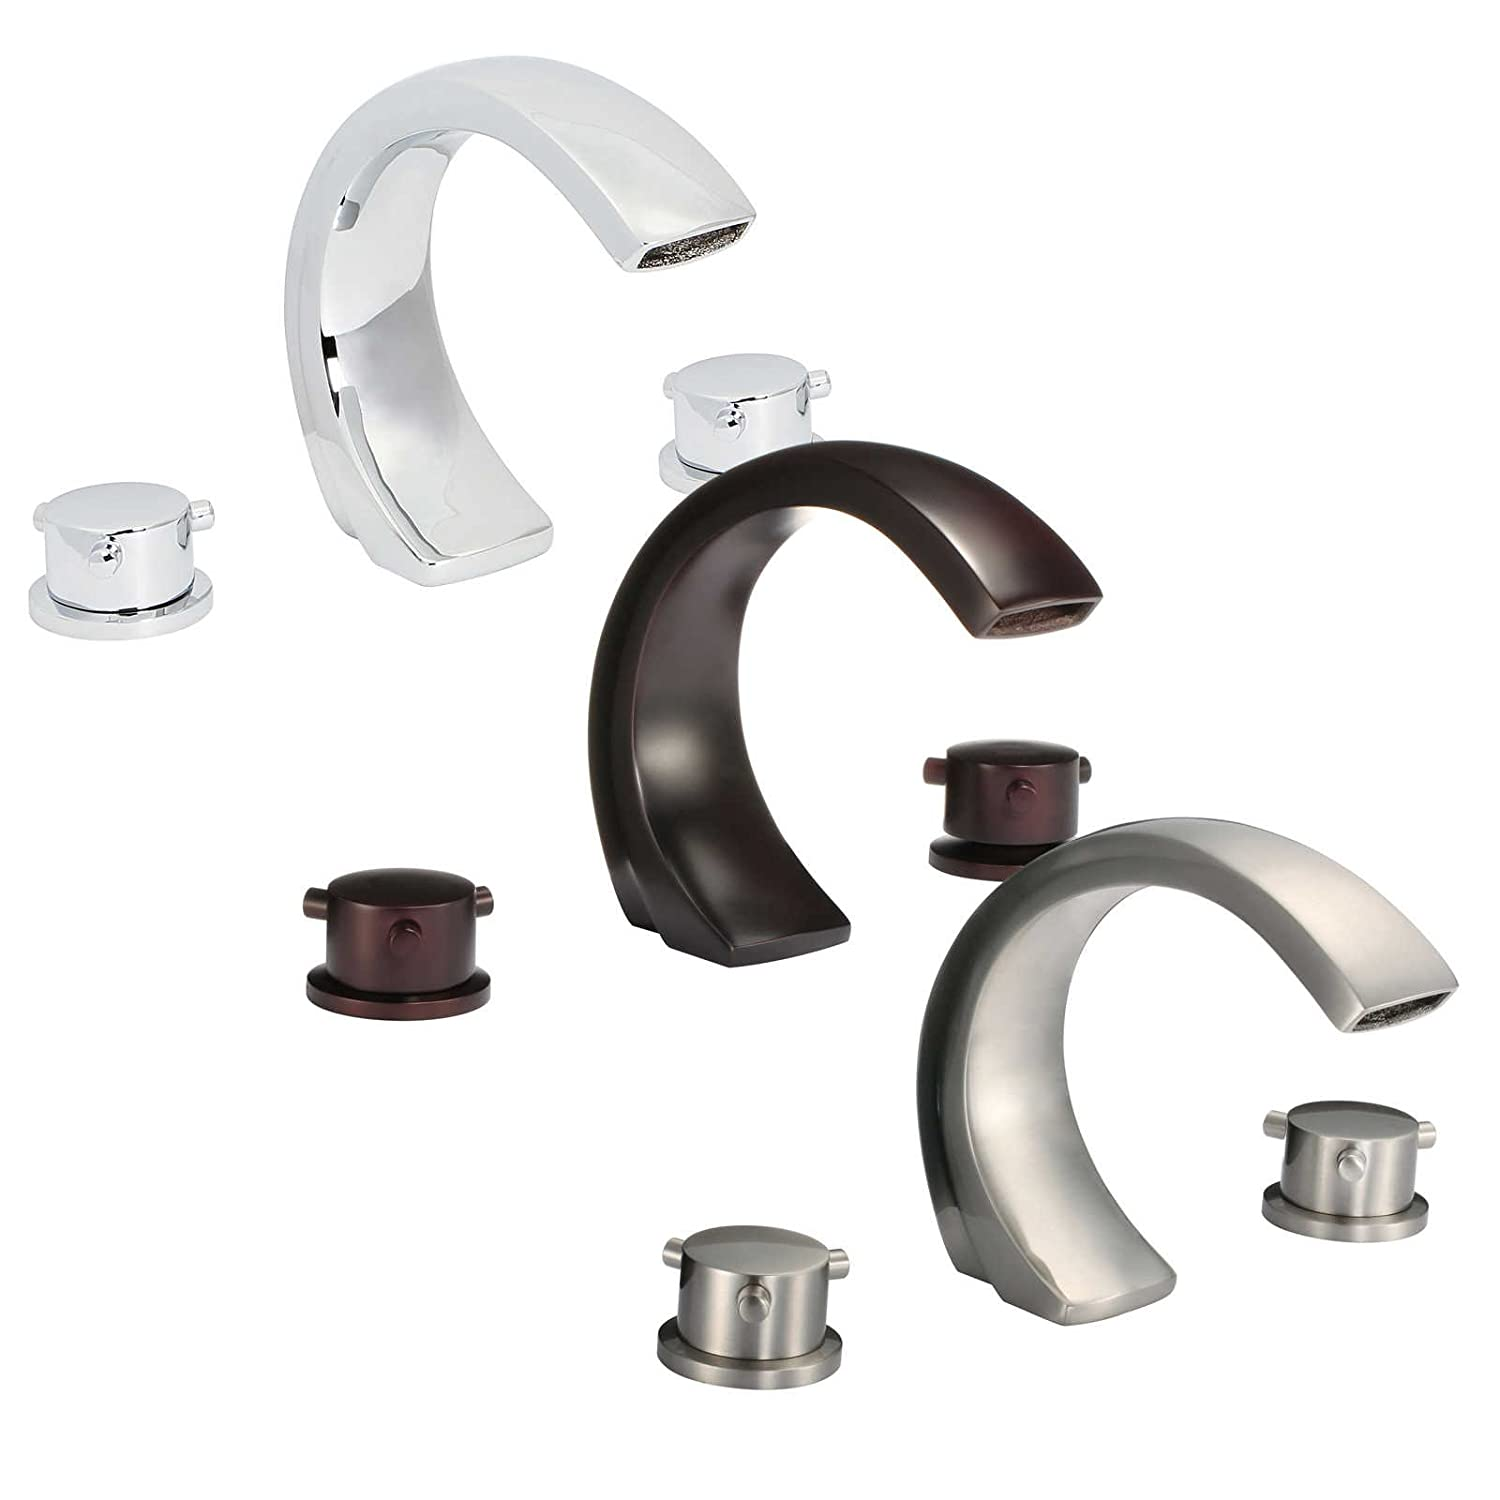 lovely FREUER Curva Collection: Modern Spread Bathroom Sink Faucet, Brushed Nickel